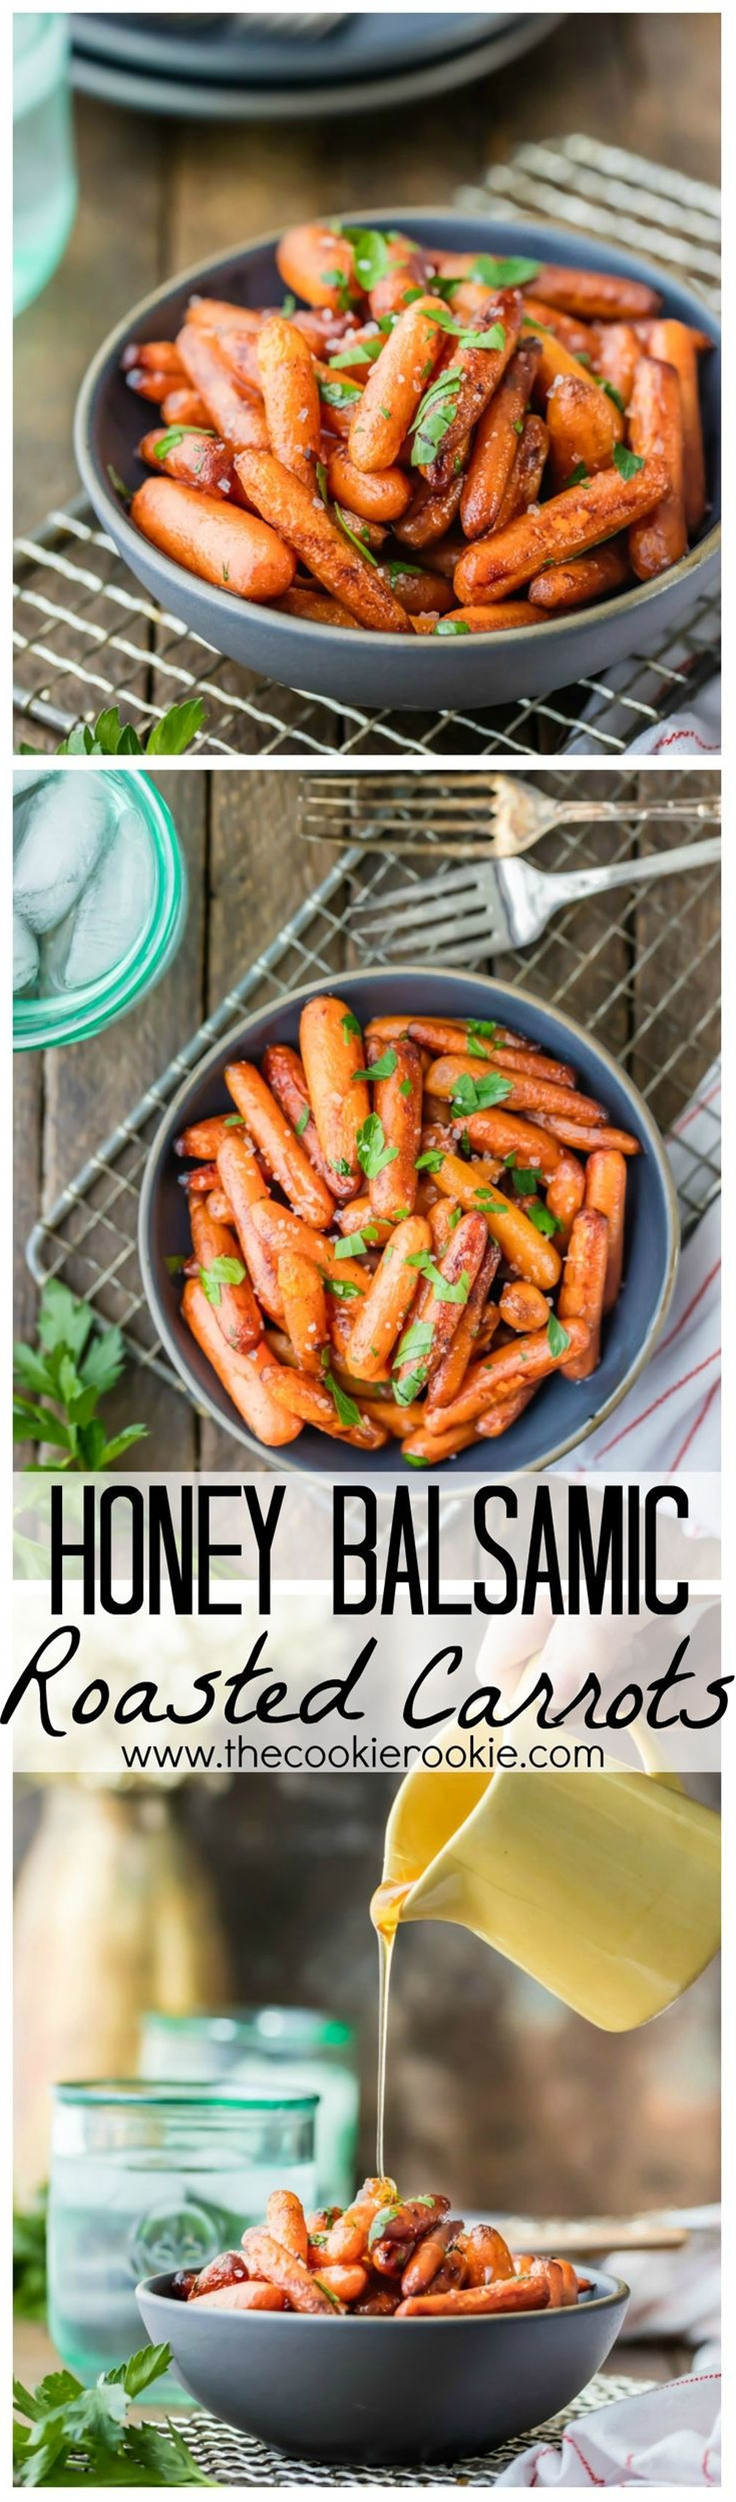 You'll look like a chef but you'll secretly know this is the EASIEST side dish EVER! Perfect healthy side for Thanksgiving!\n\n